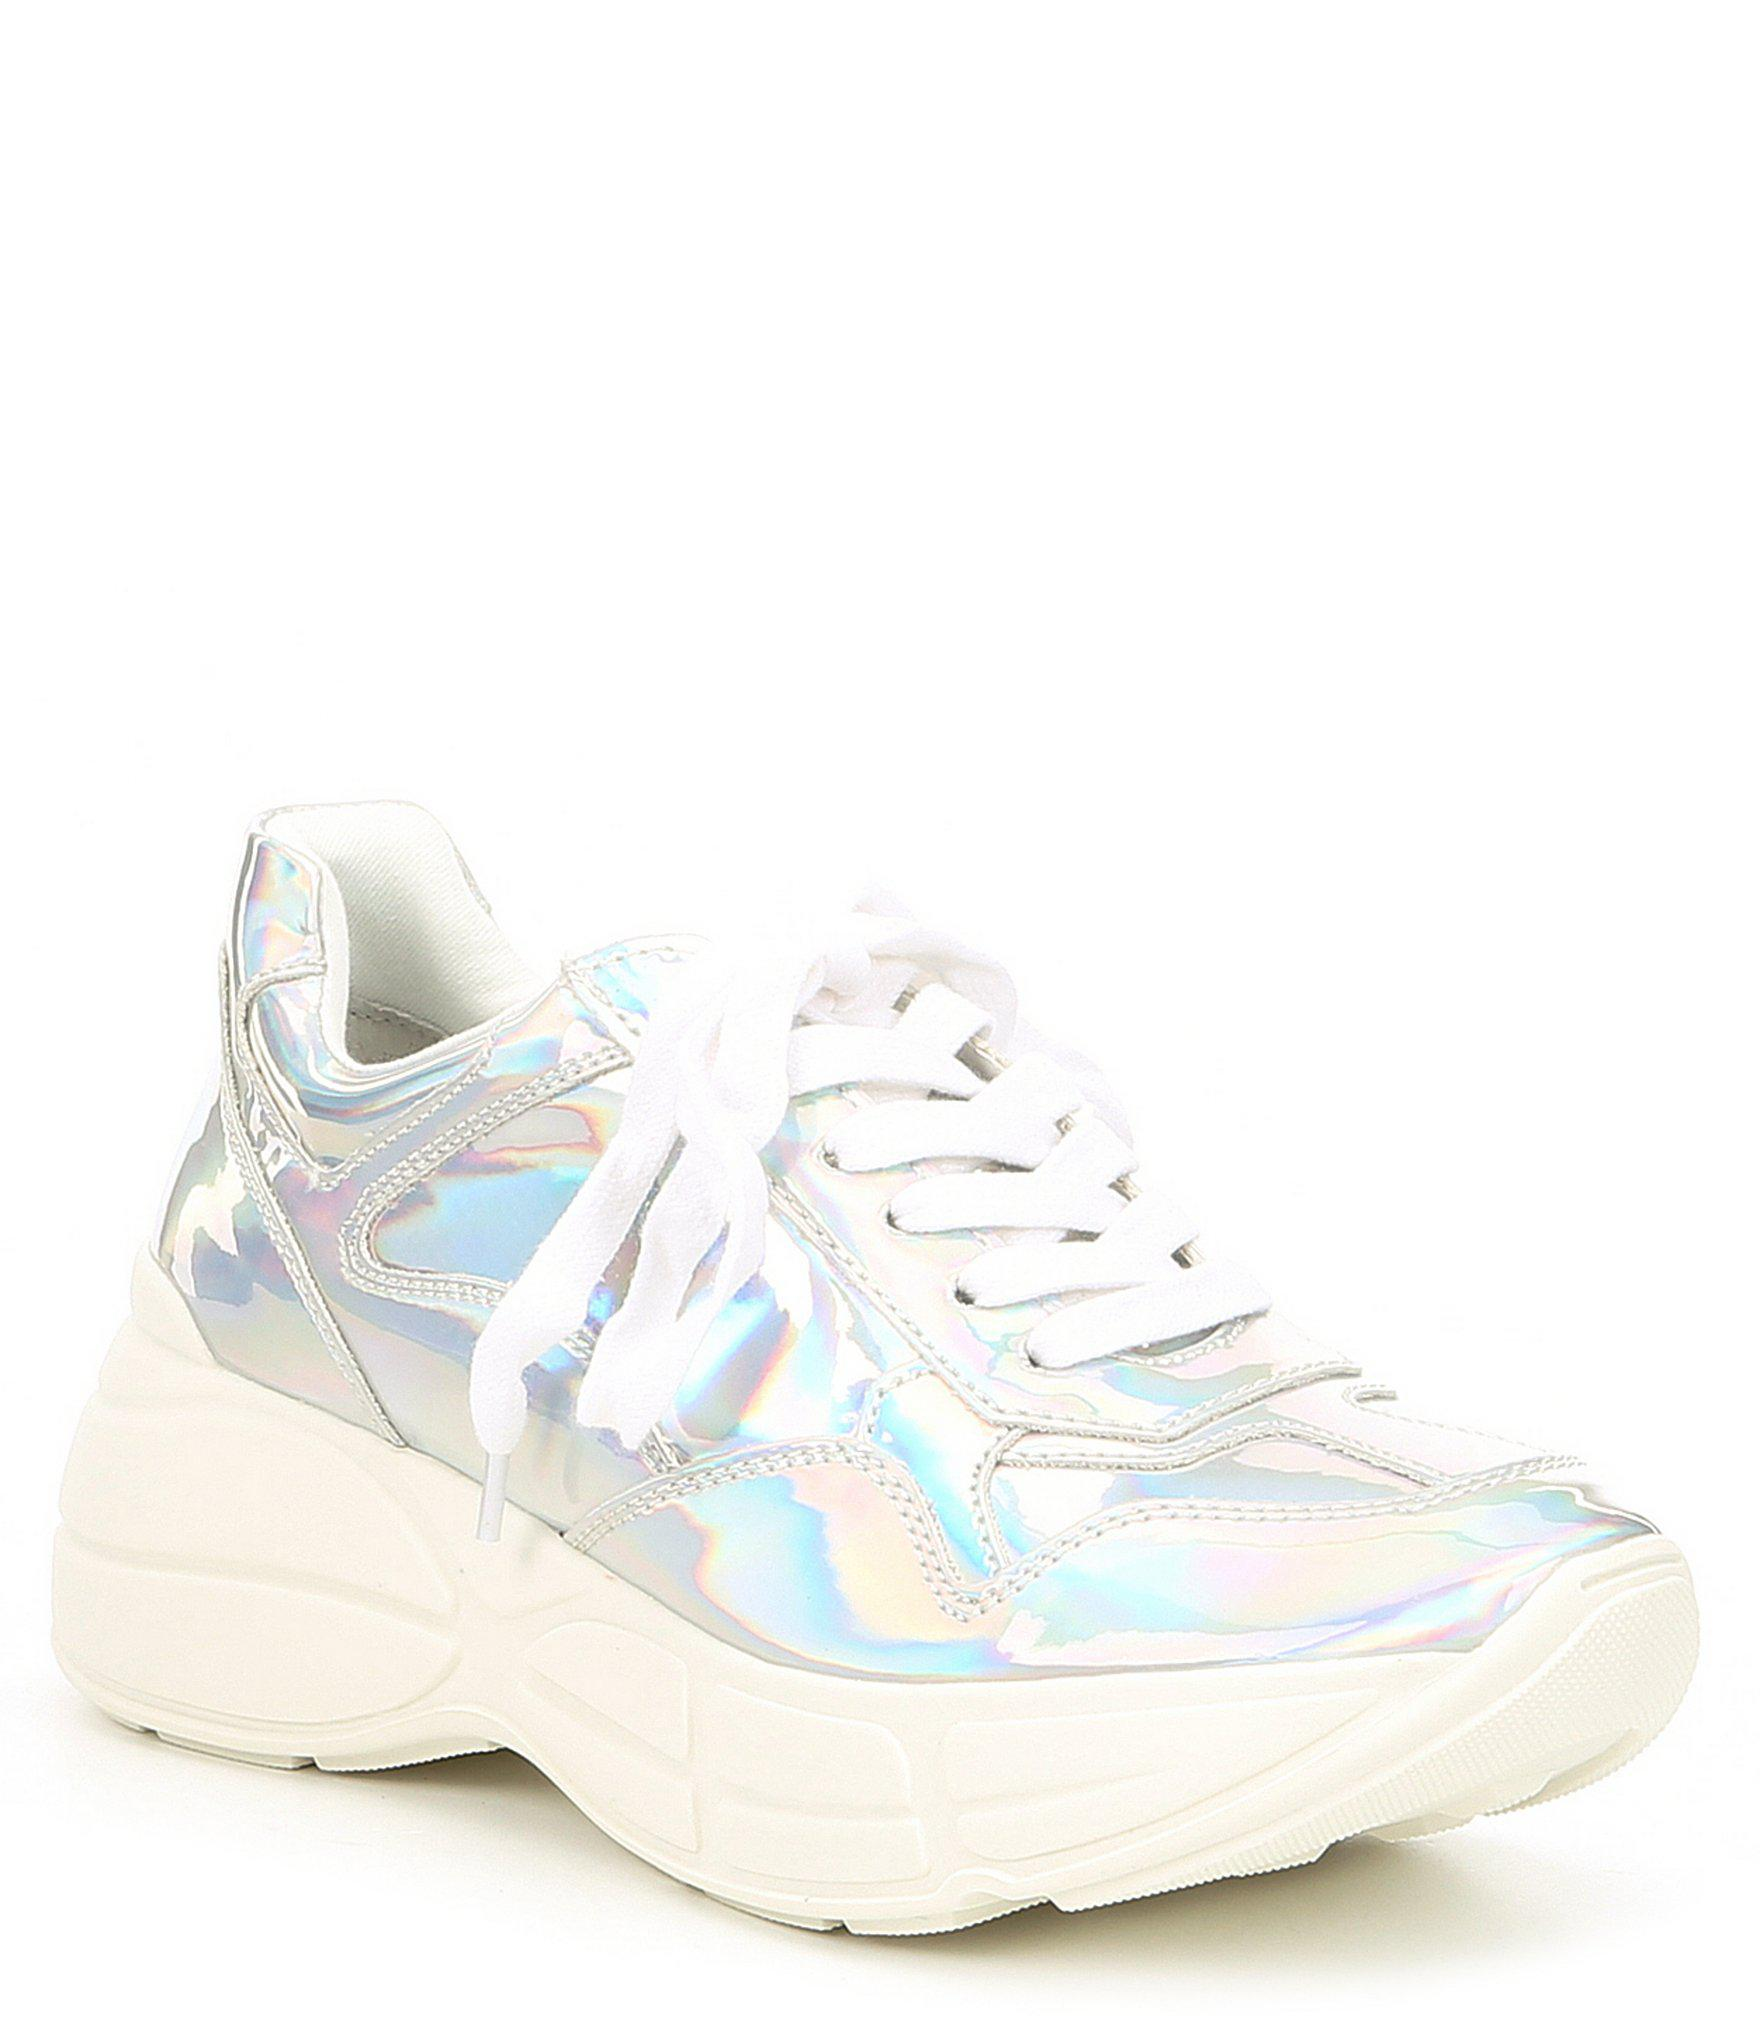 b223f70bd1e Lyst - Steve Madden Memory Iridescent Sneakers in Blue